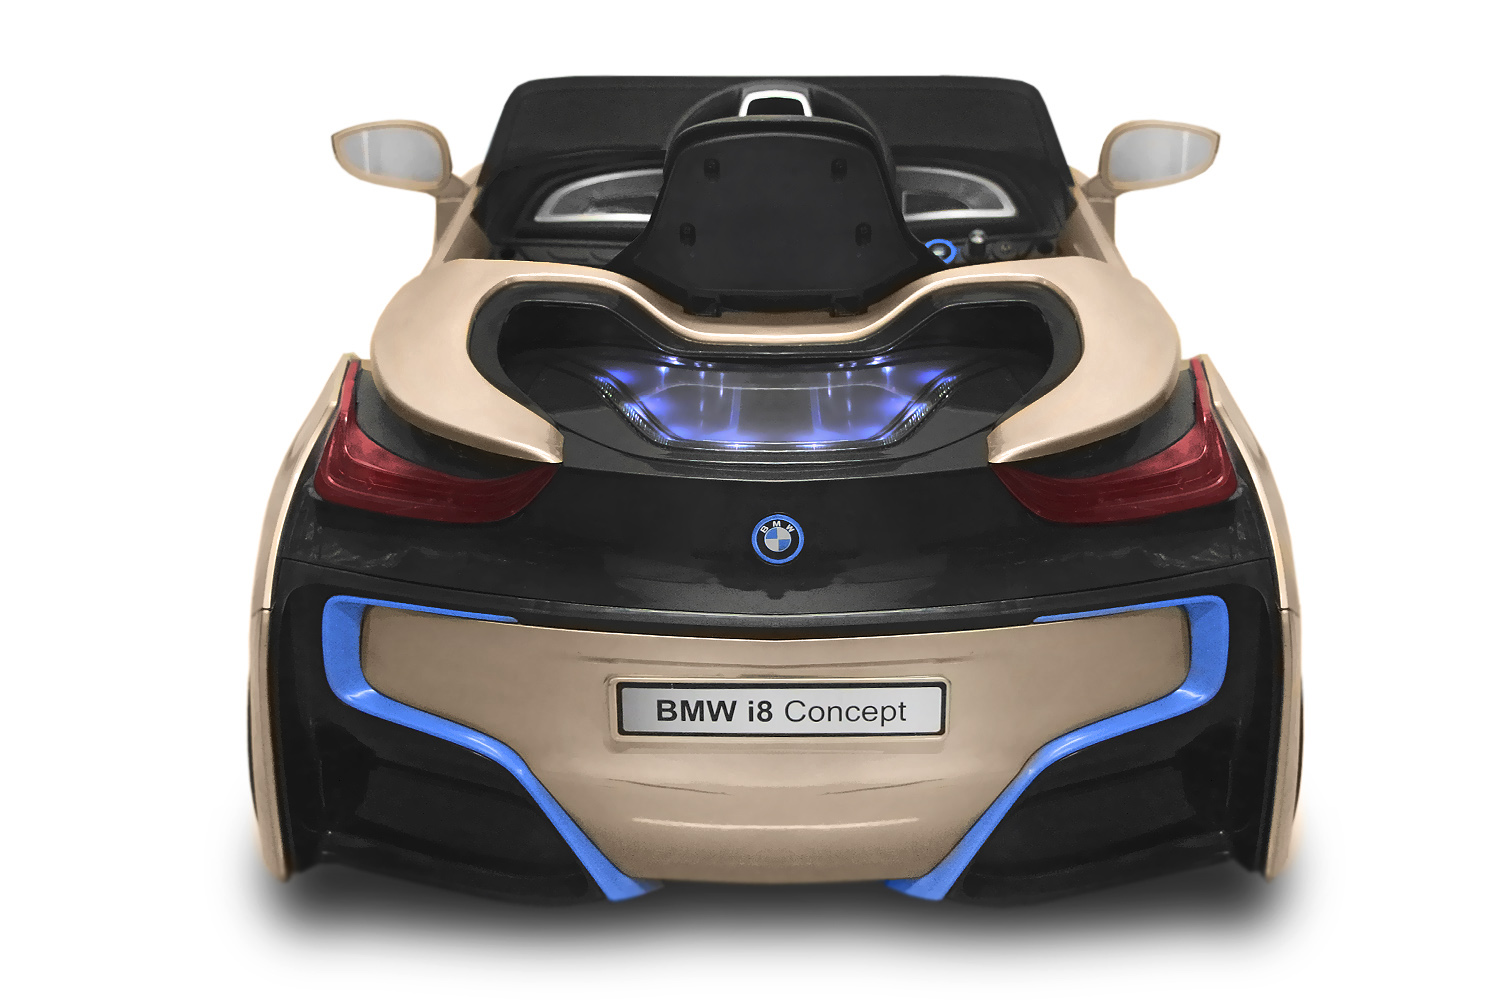 mohr onlinehandel lizenz bmw elektro kinderauto bmw i8. Black Bedroom Furniture Sets. Home Design Ideas